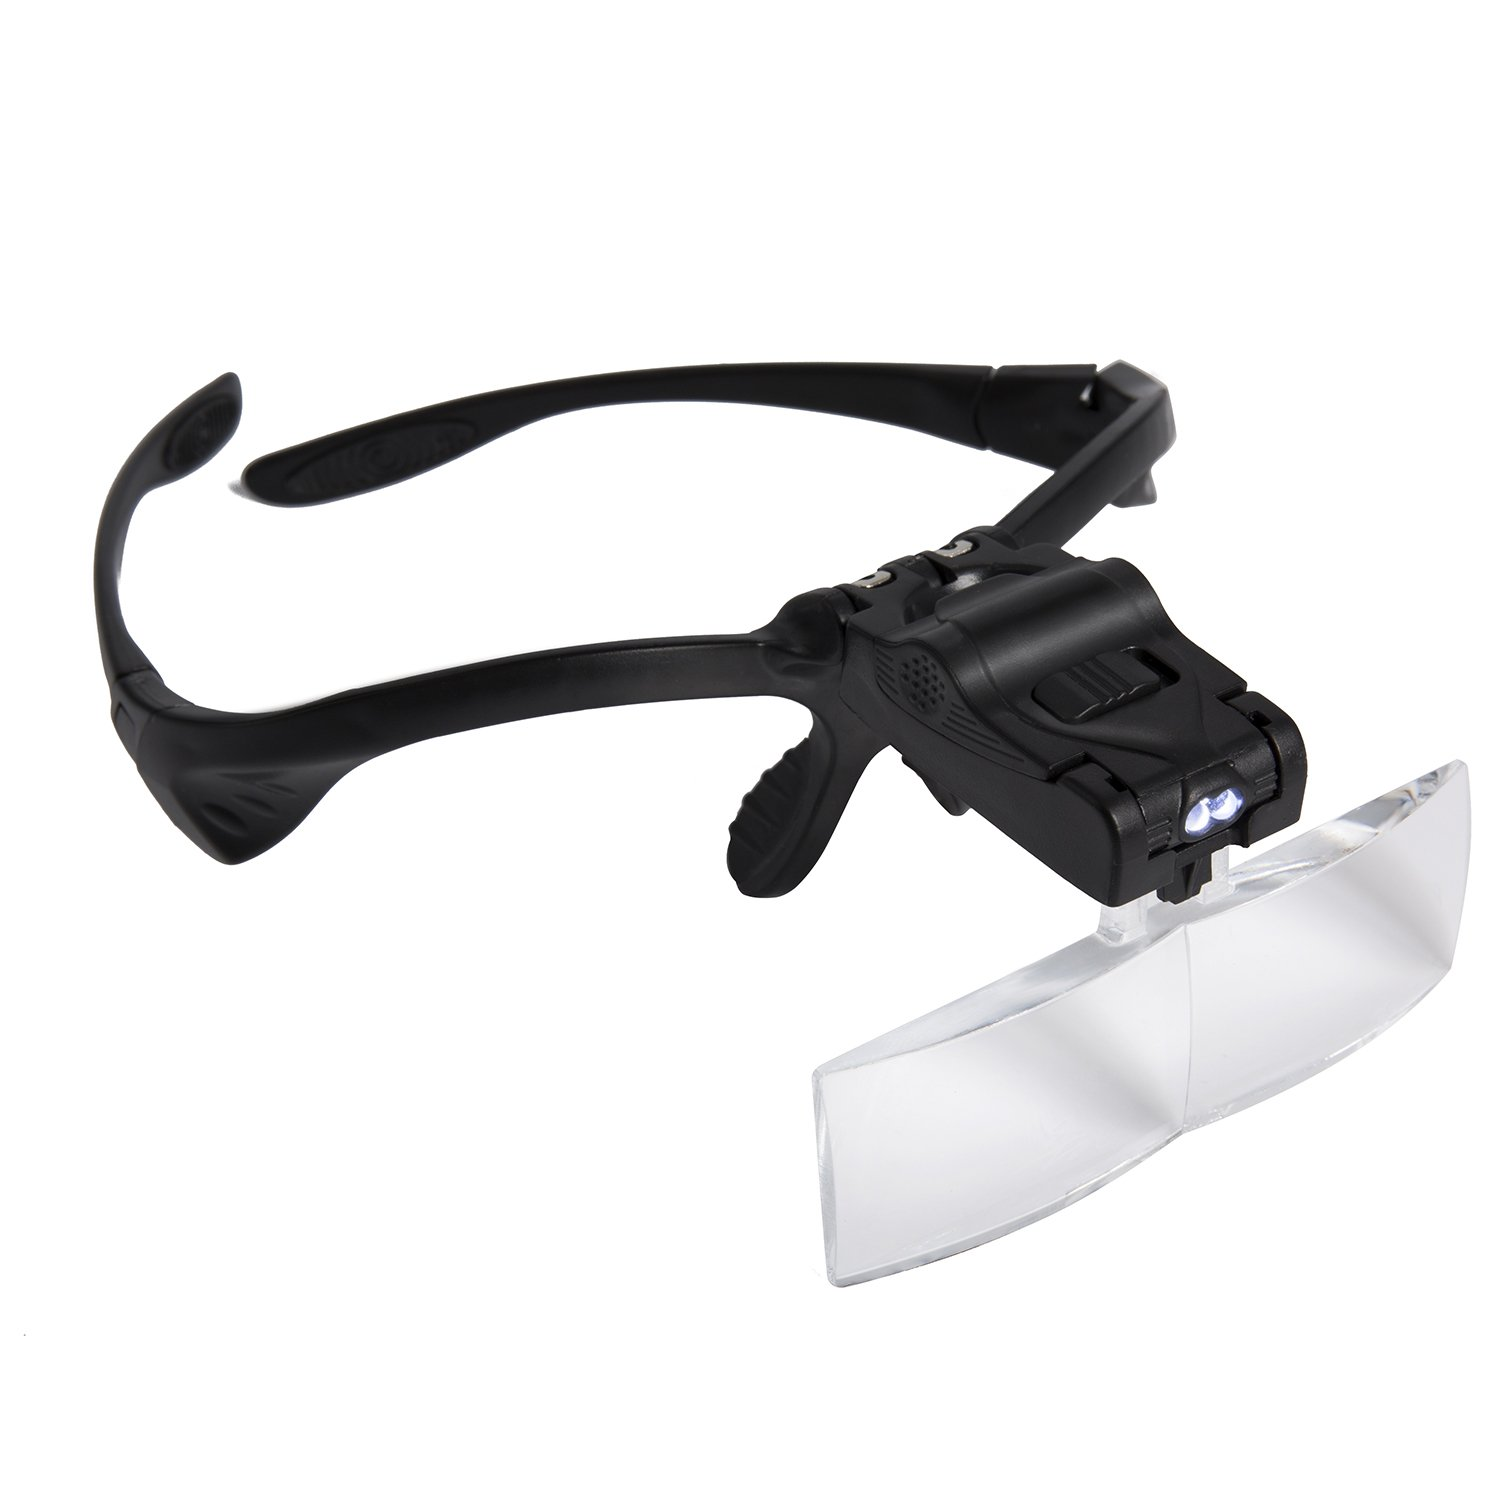 Head Mount Magnifier Eyewear with 2 LED Professional Jeweler's Loupe Light Bracket & Headband are Interchangeable 5 Replaceable Lenses: 1.0X, 1.5X, 2.0X, 2.5X, 3.5X for Seniors, Hobbyists